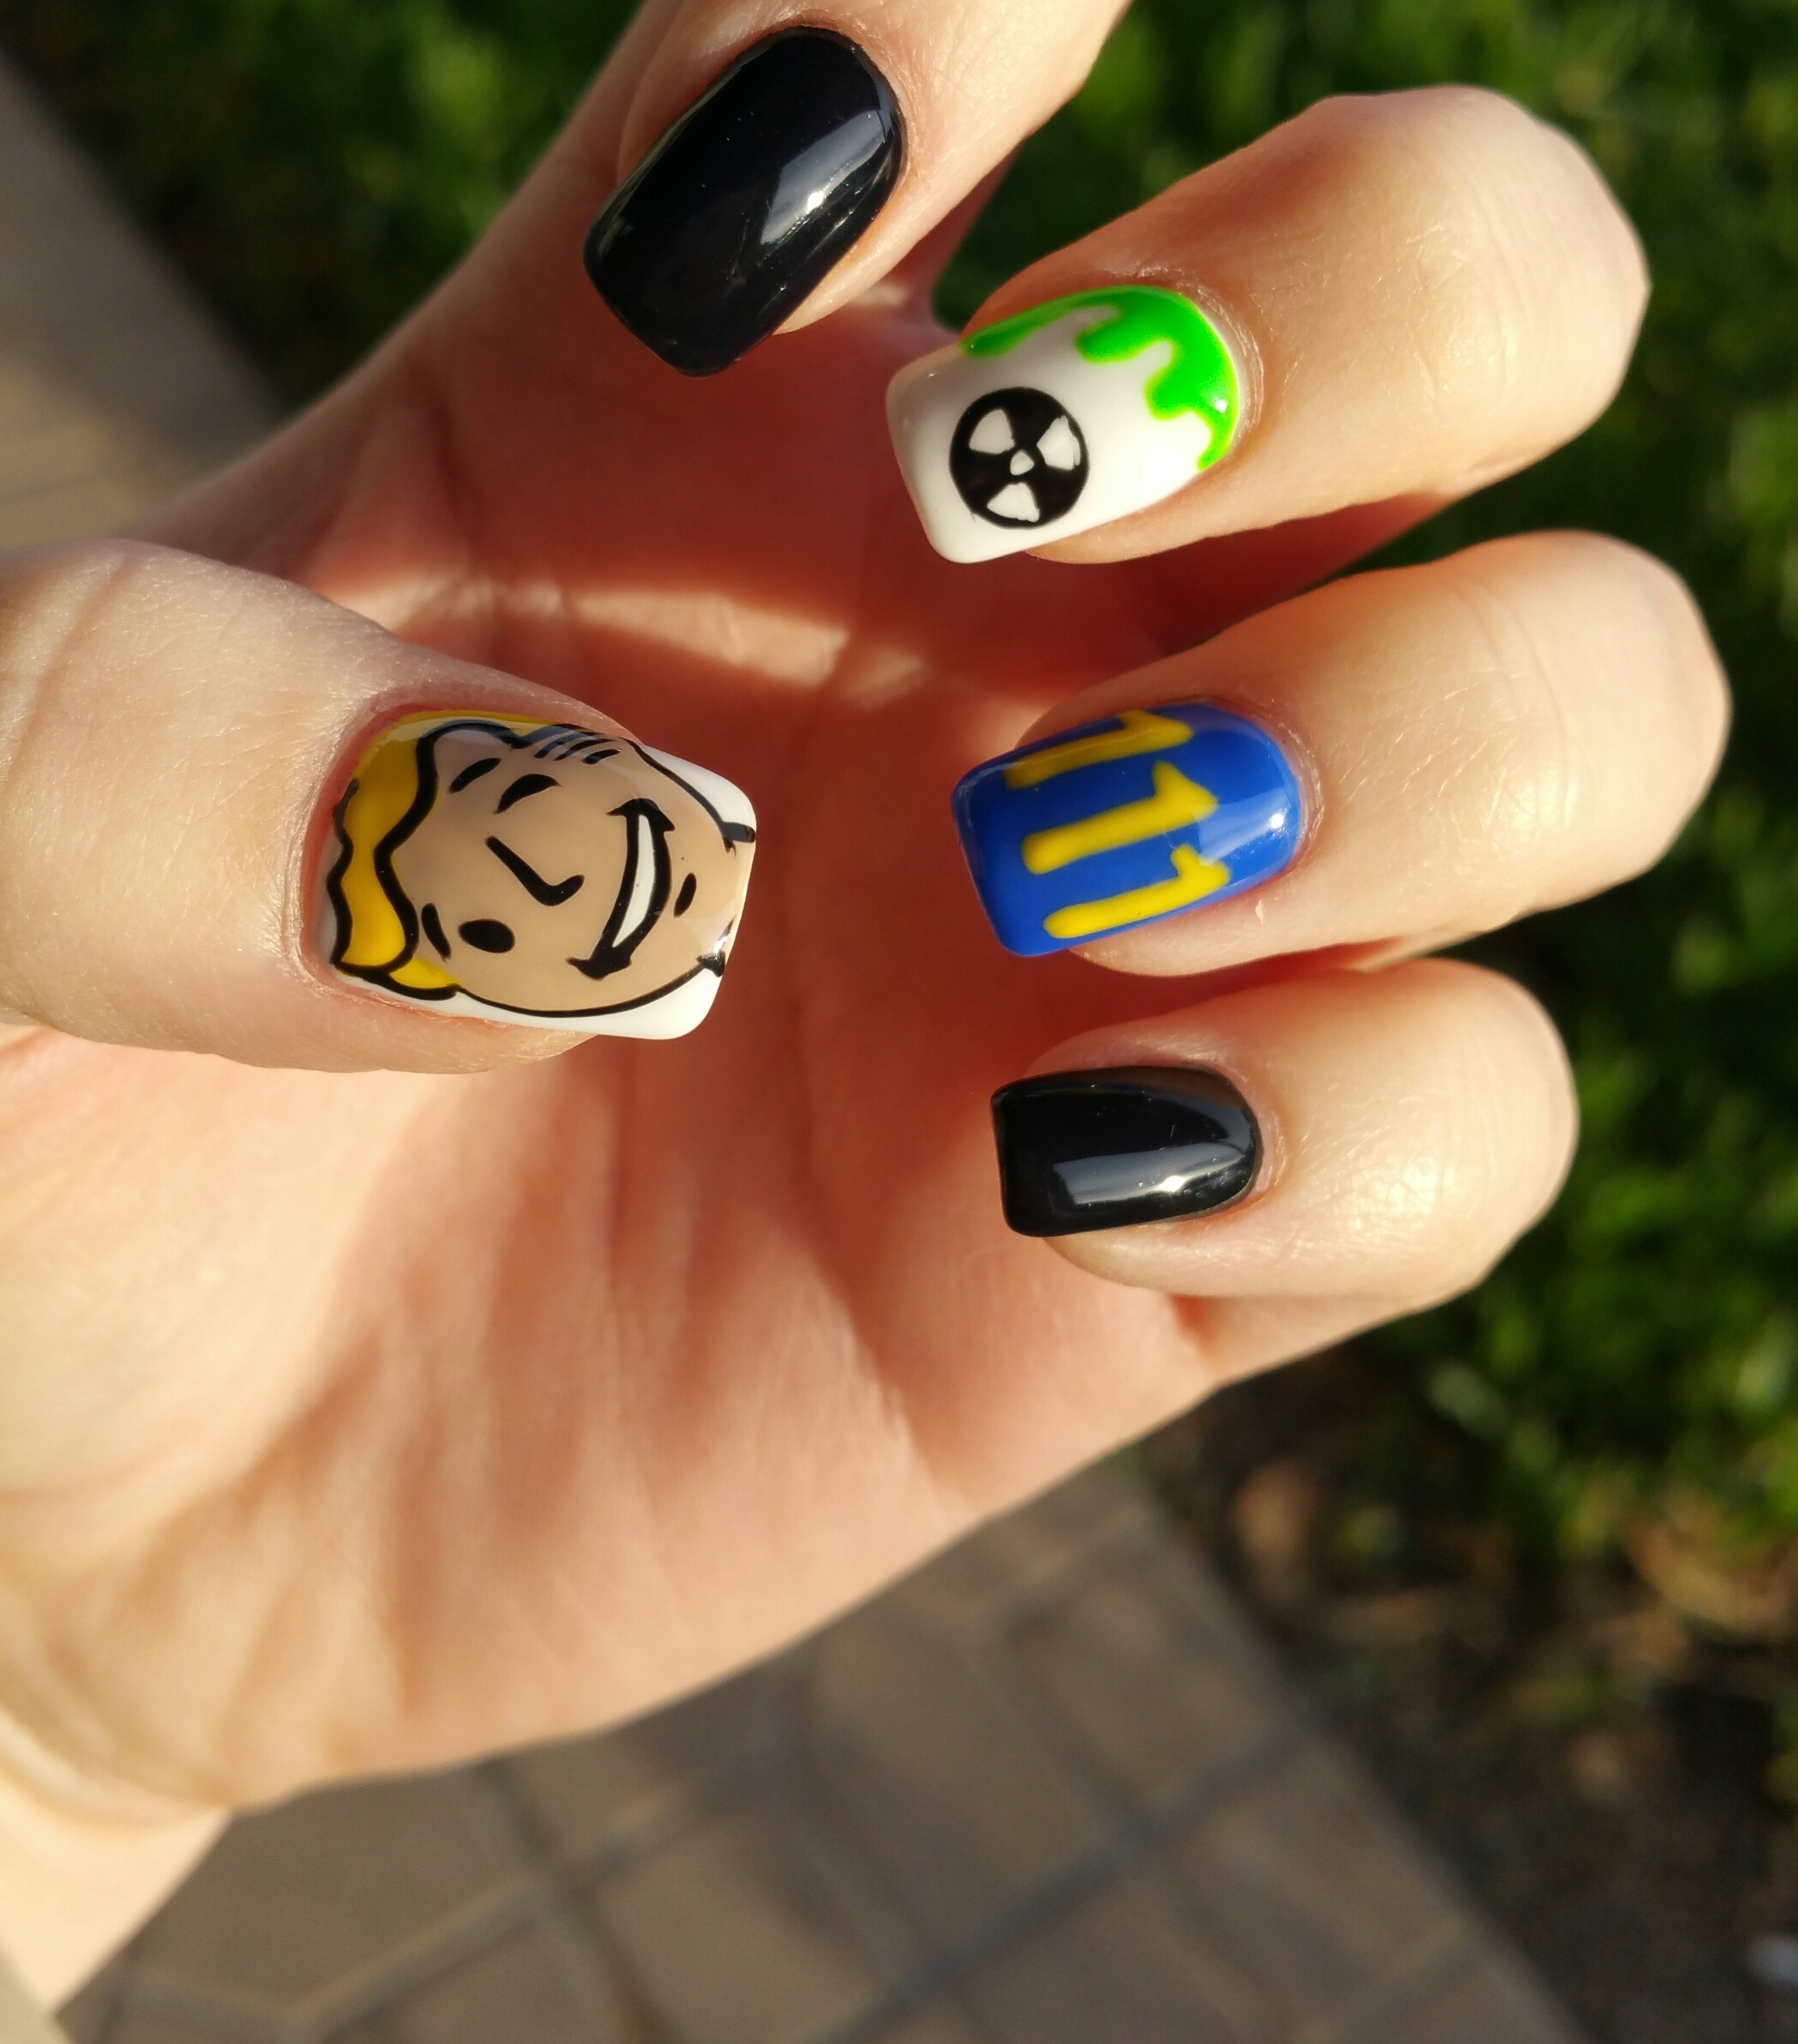 Nailed It: This Fallout 4 Manicure Is The (Atom) Bomb